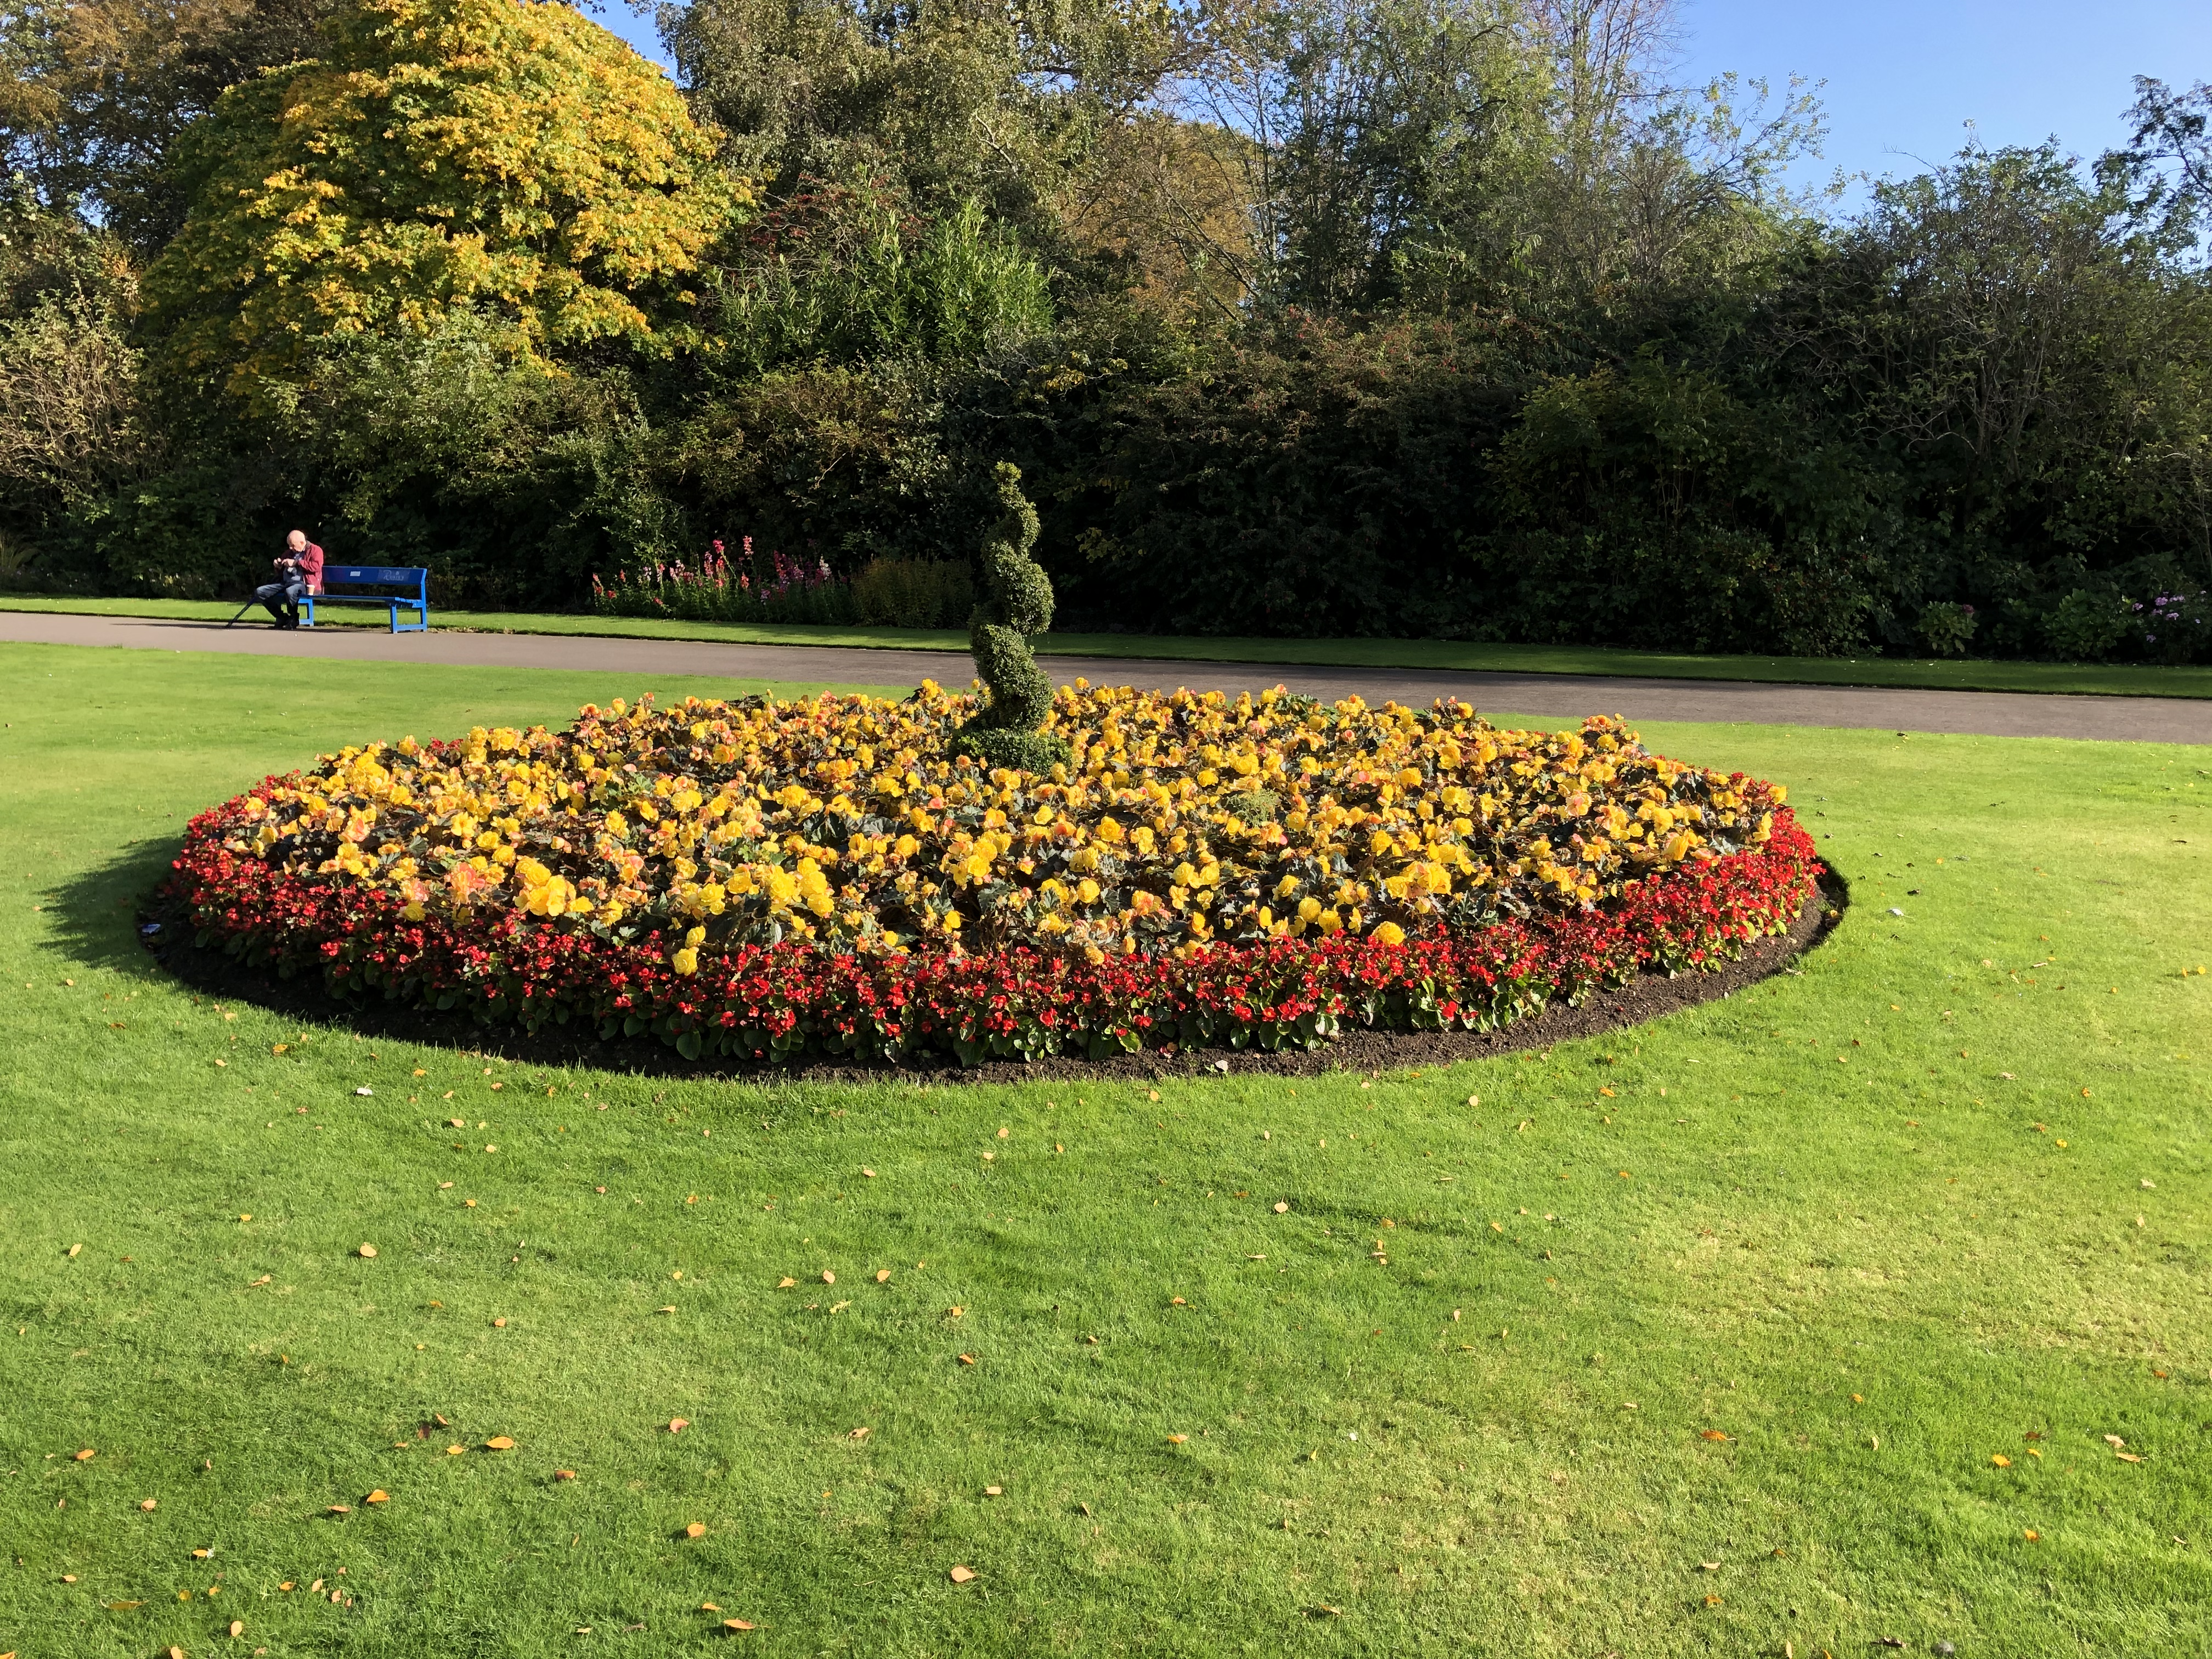 Flower arrangement in Seaton park